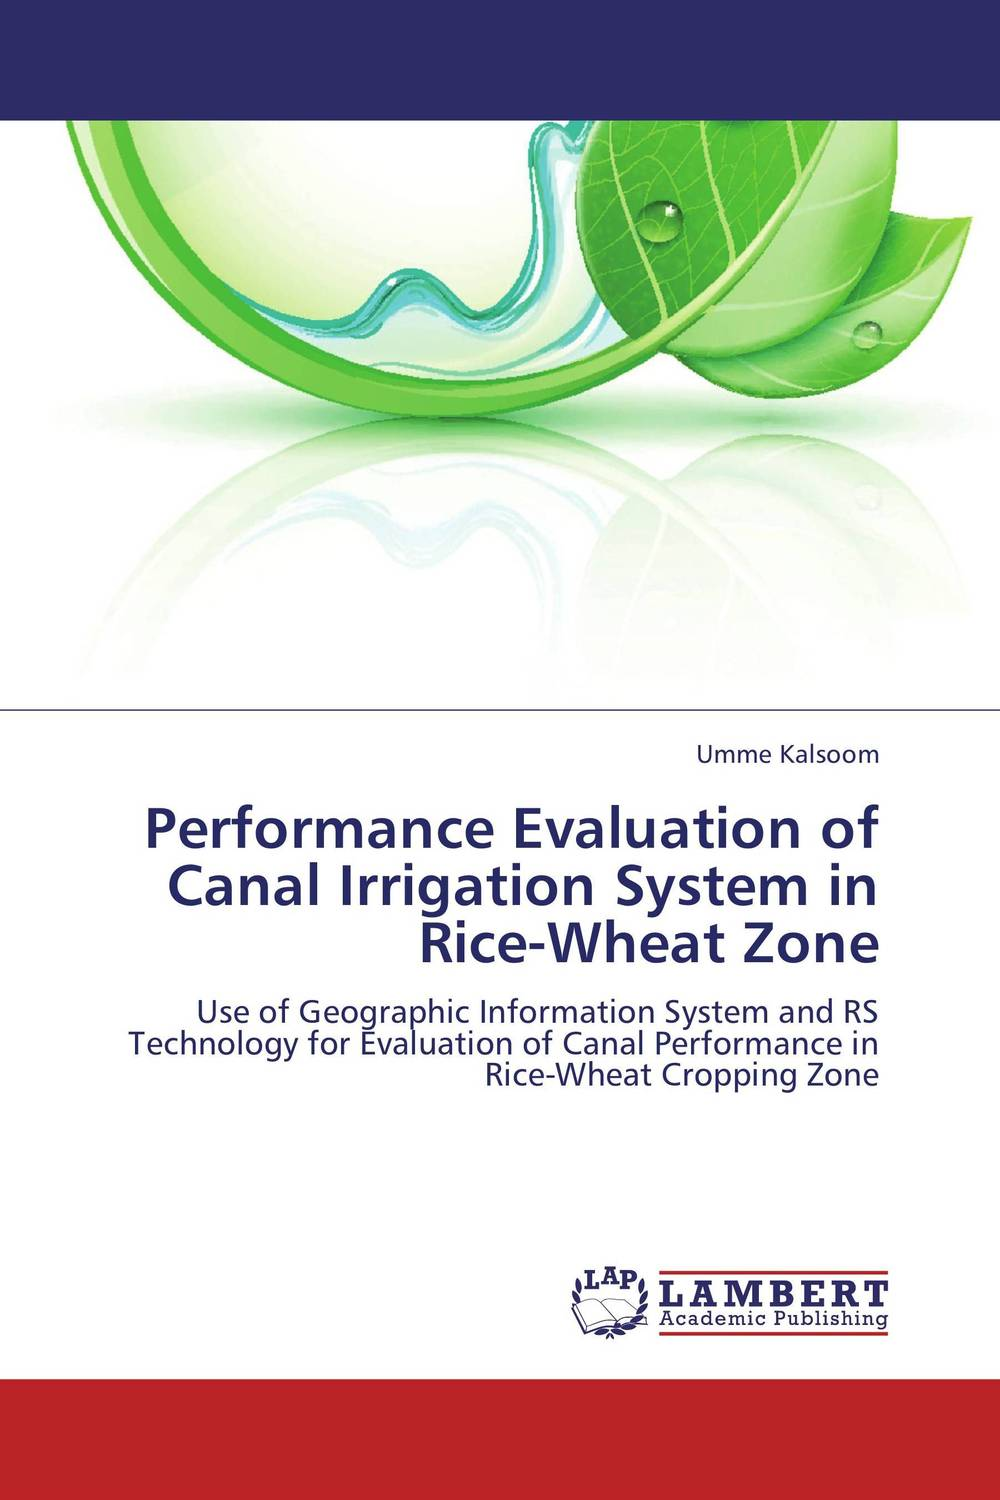 Performance Evaluation of Canal Irrigation System in Rice-Wheat Zone the teeth with root canal students to practice root canal preparation and filling actually